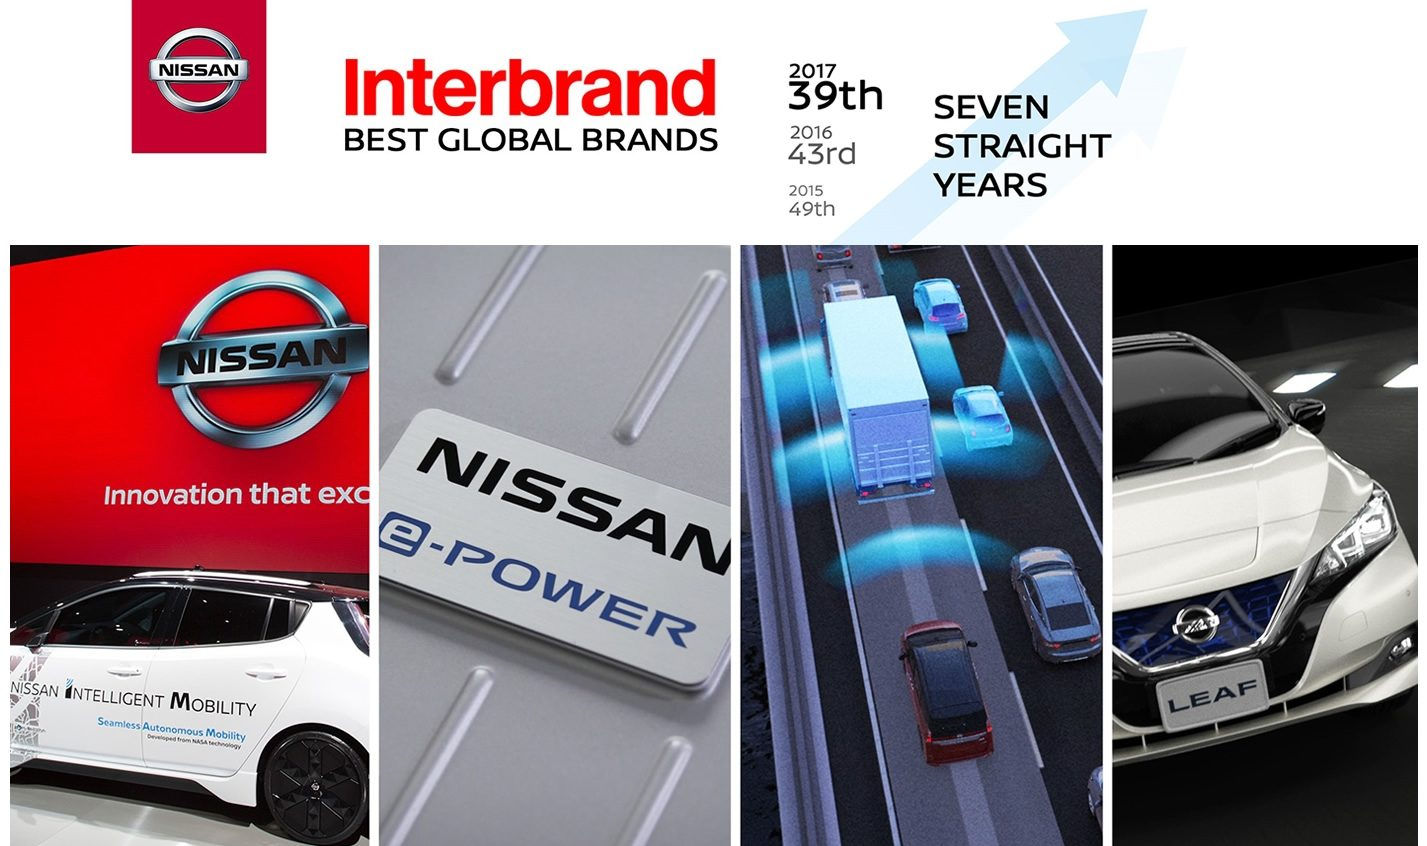 Interbrand Names  Nissan one of the Best Global Brands in 2017